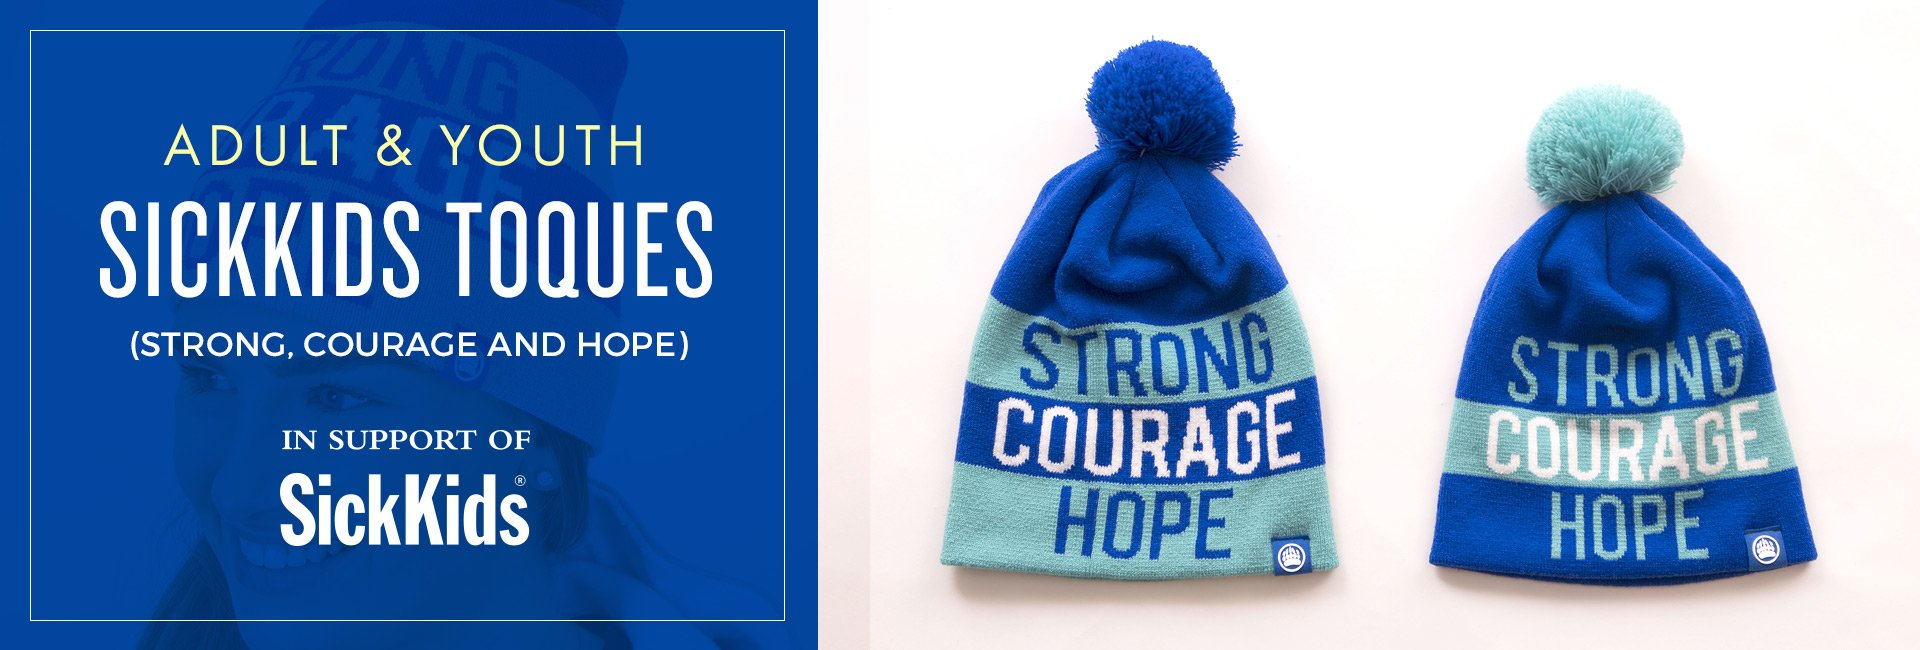 Muskoka Bear Wear - SickKids Toques (Strong, Courage & Hope)